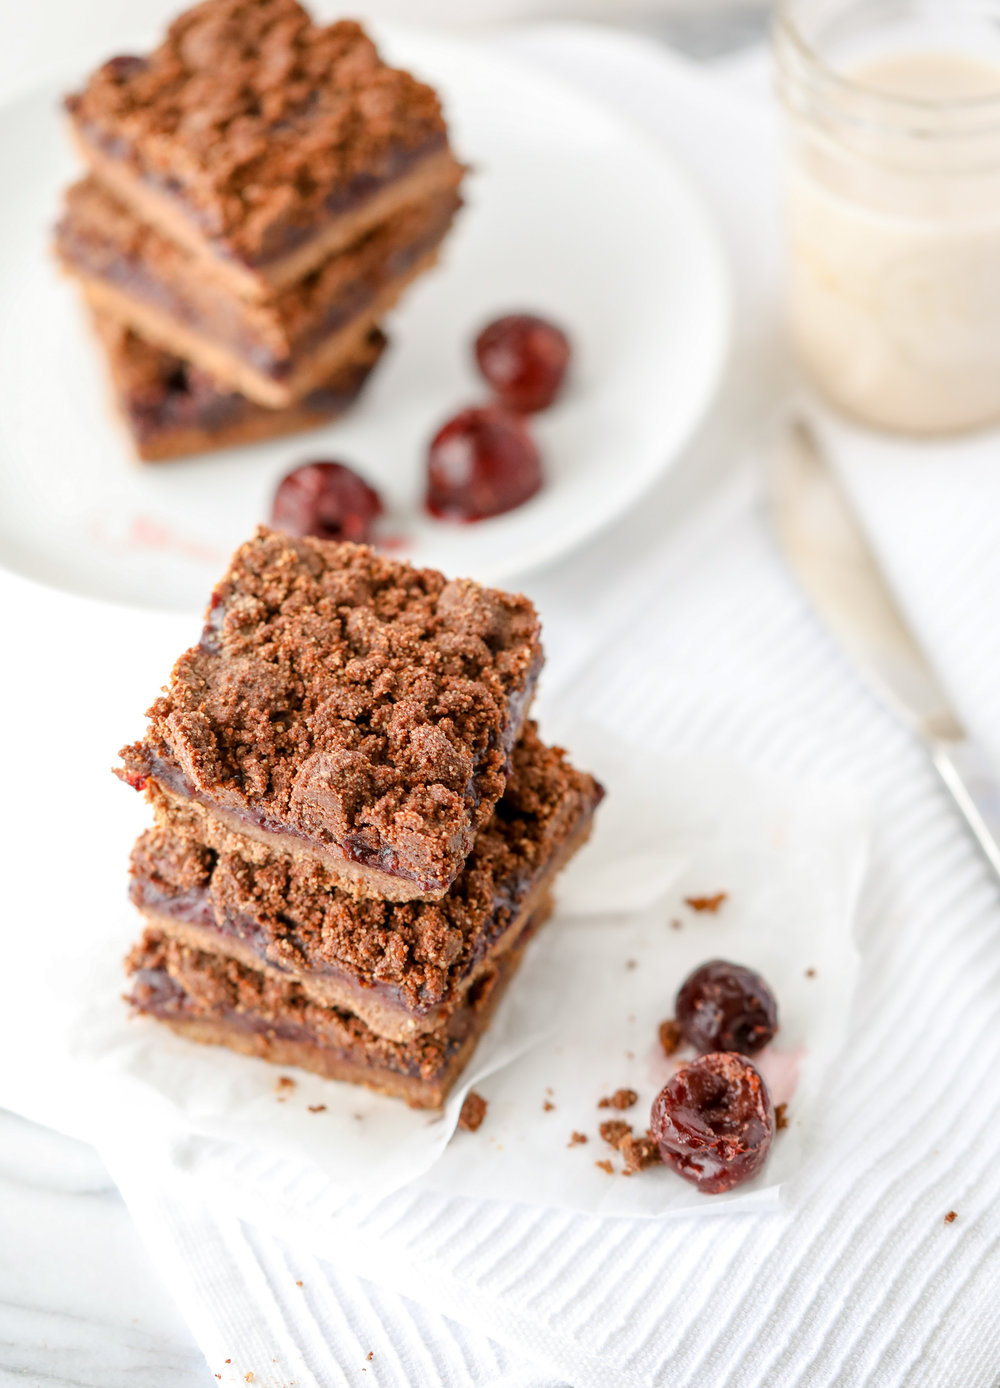 Healthy Chocolate-Cherry Crumble Bars (Grain-free, Dairy-free)